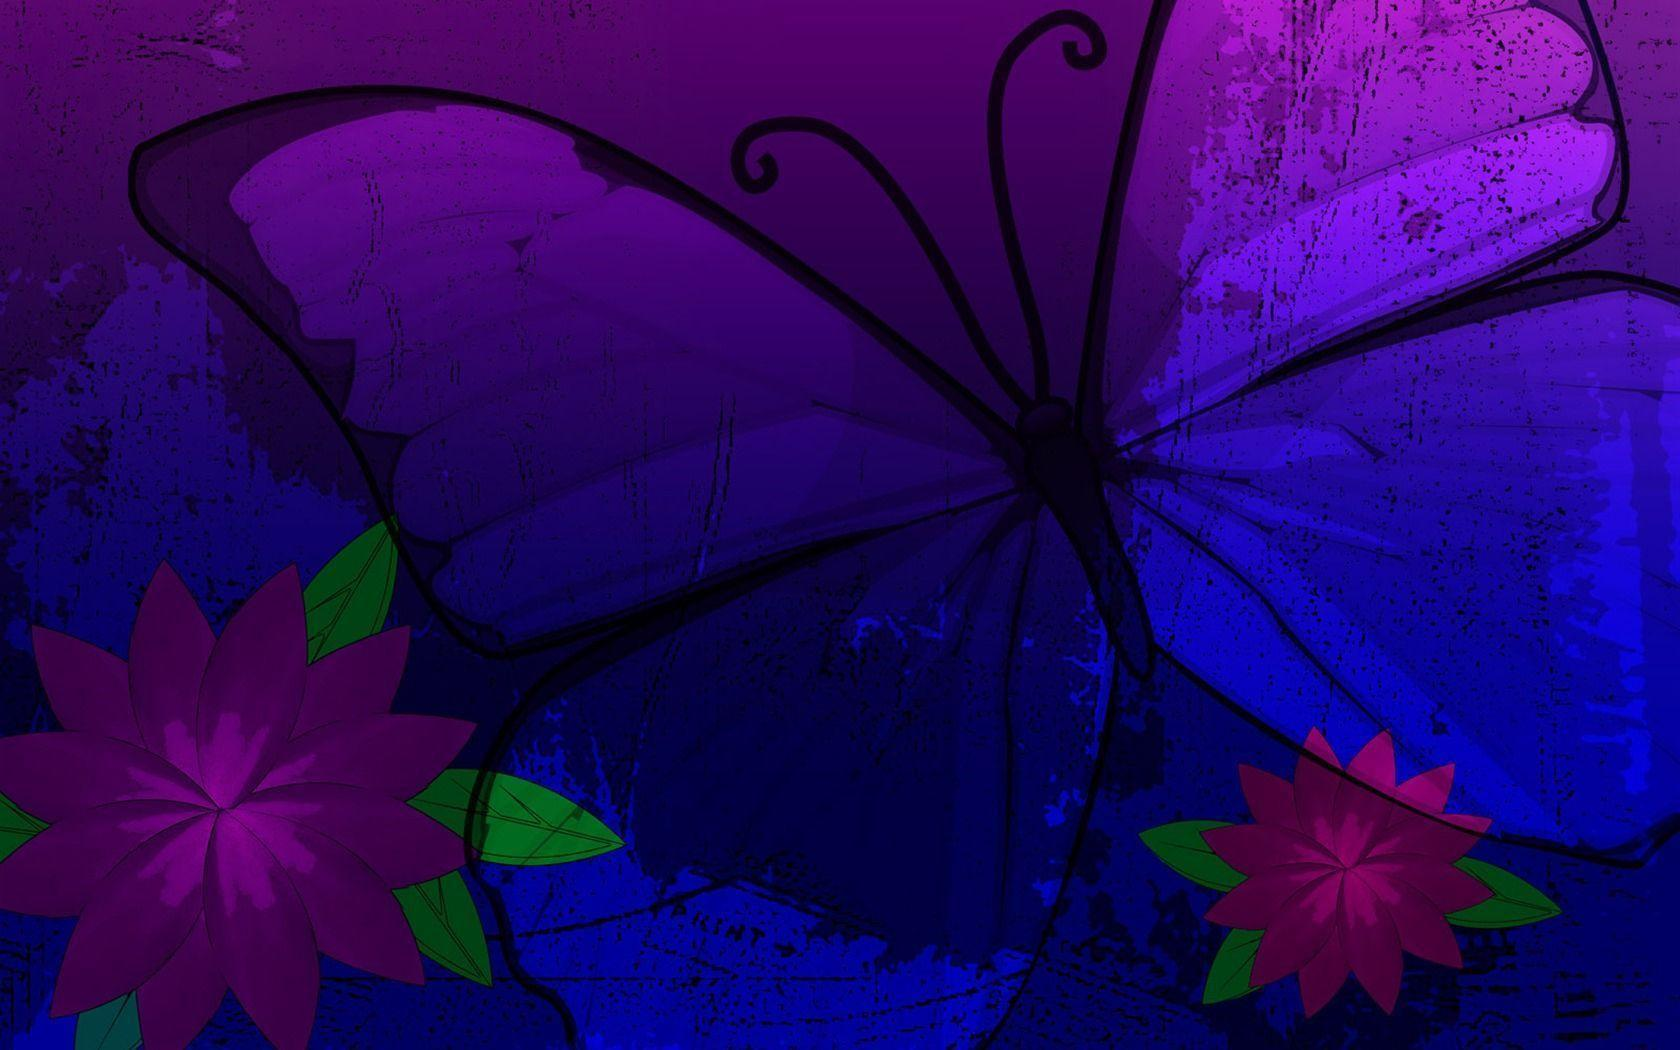 butterfly blue abstract wallpaper - photo #36